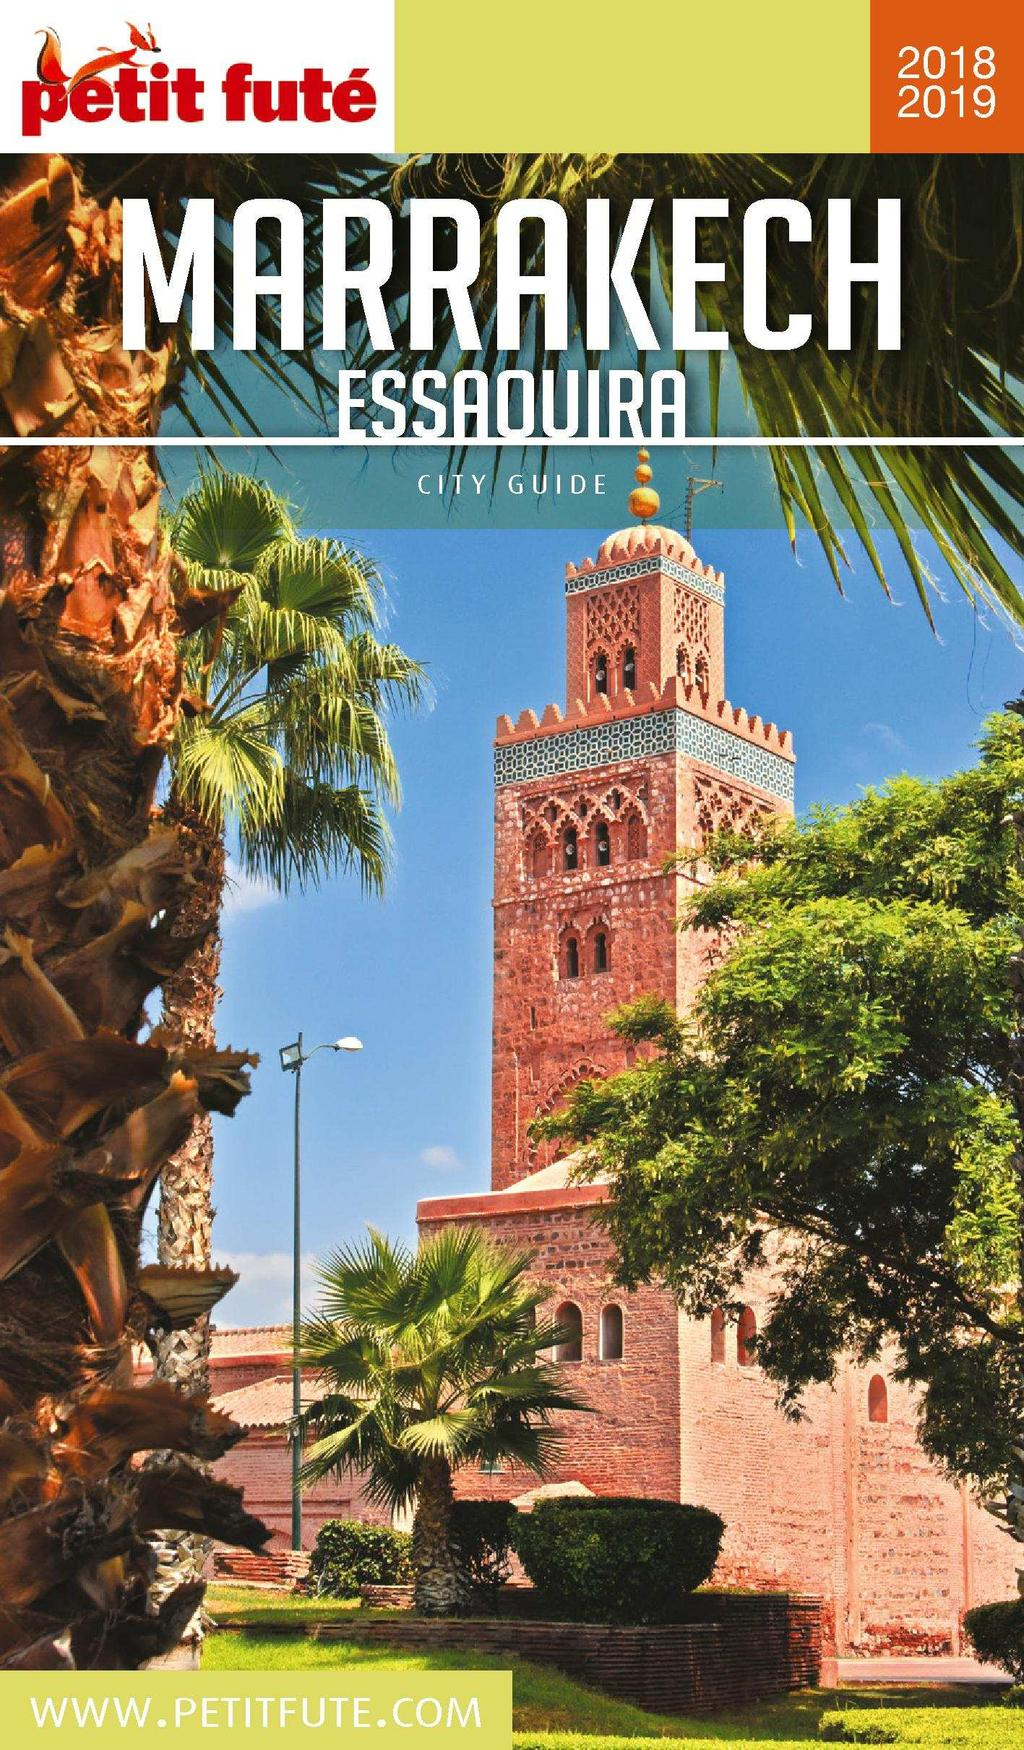 La Version Complete De Votre Guide Marrakech 2018 2019 En Numerique Ou En Papier En 3 Clics A Partir De Disponible Sur Pdf Free Download